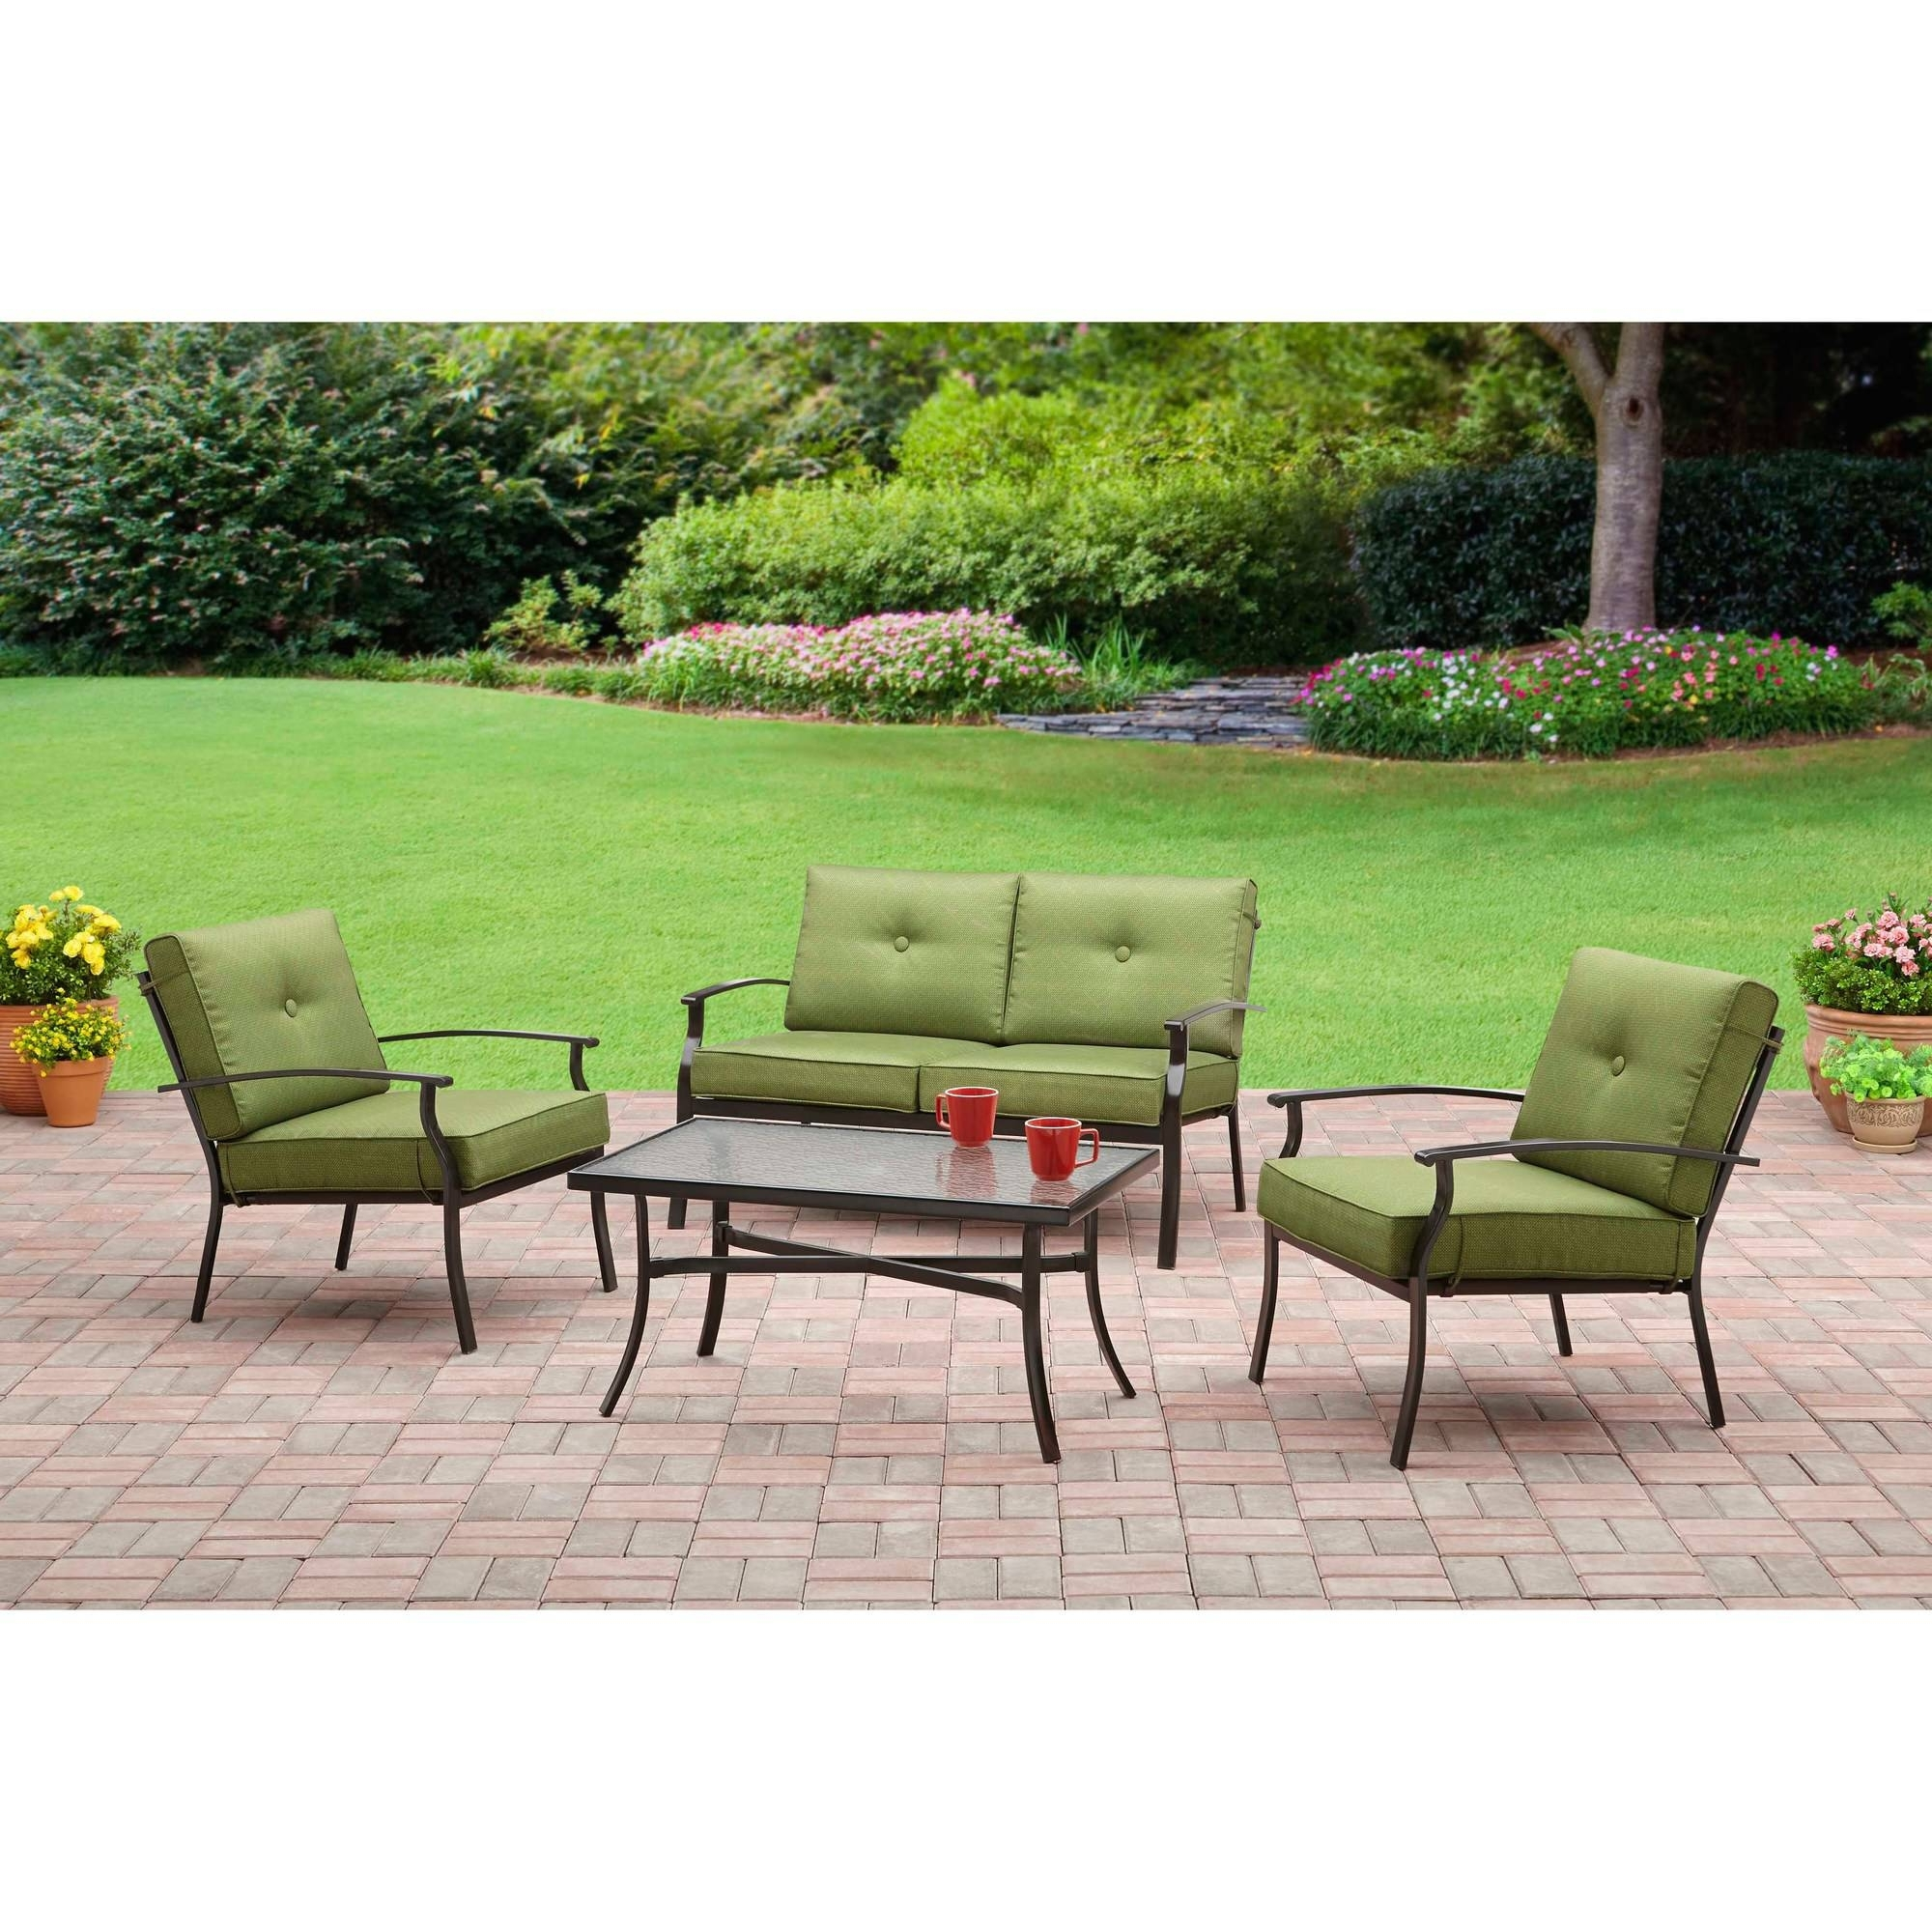 Popular 4 Piece Patio Conversation Sets Intended For Mainstays Bryant Place 4 Piece Conversation Set, Green – Walmart (View 6 of 15)